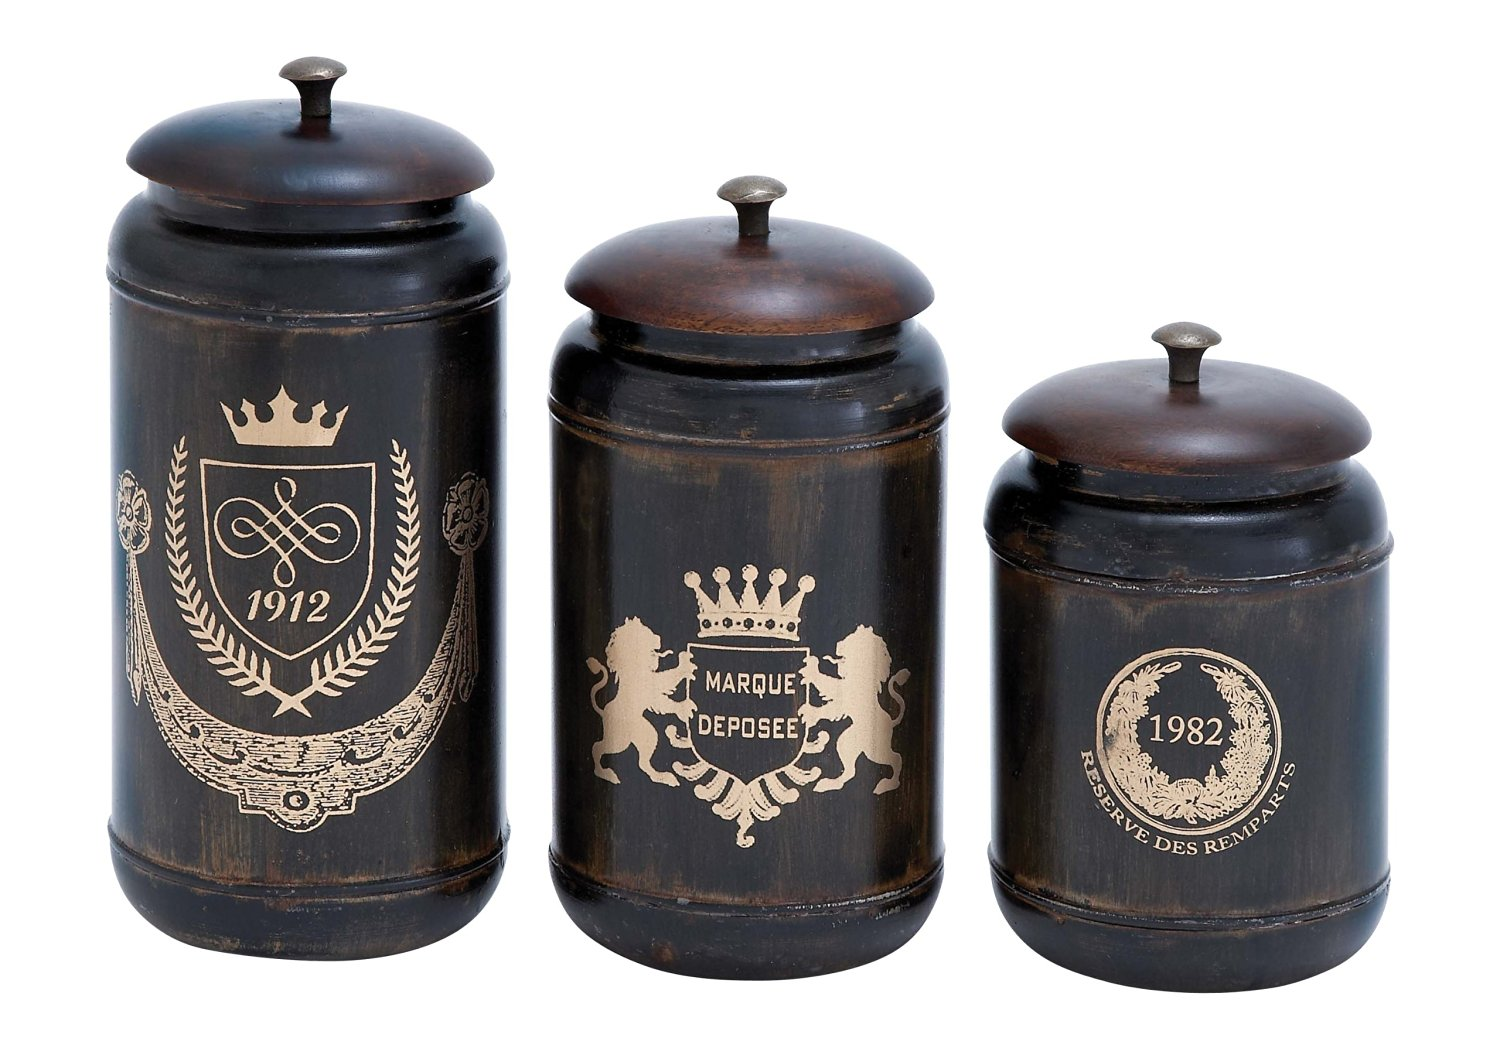 Plutus Brands Canisters with Cylindrical Jars and Matching Lids, Set of 3